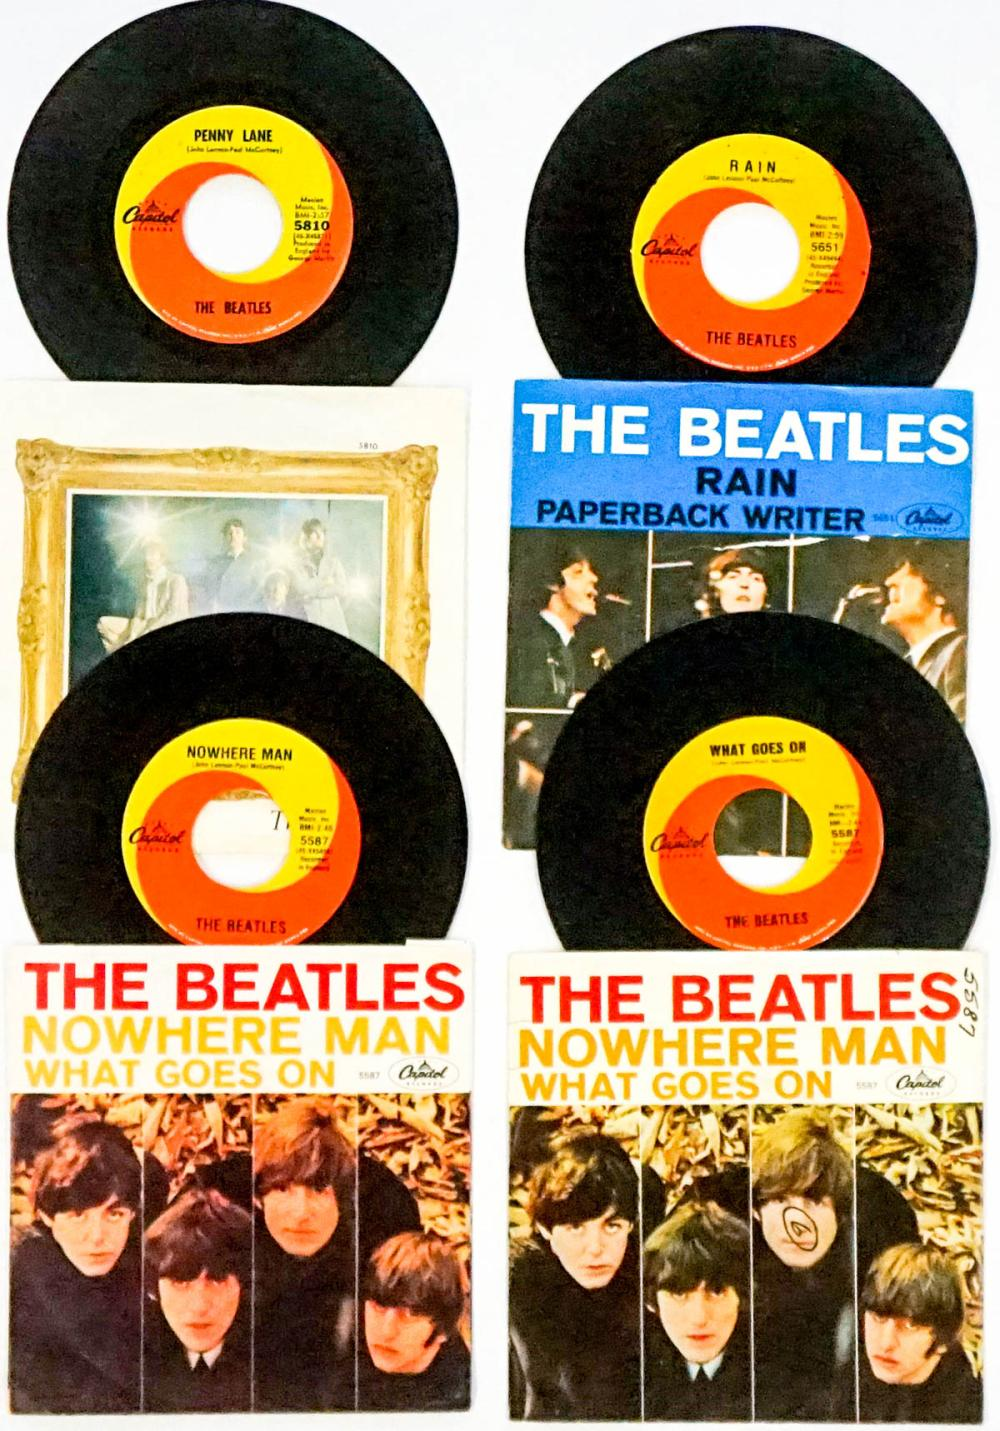 Lot 61: The Beatles (4) 45 RPM Records